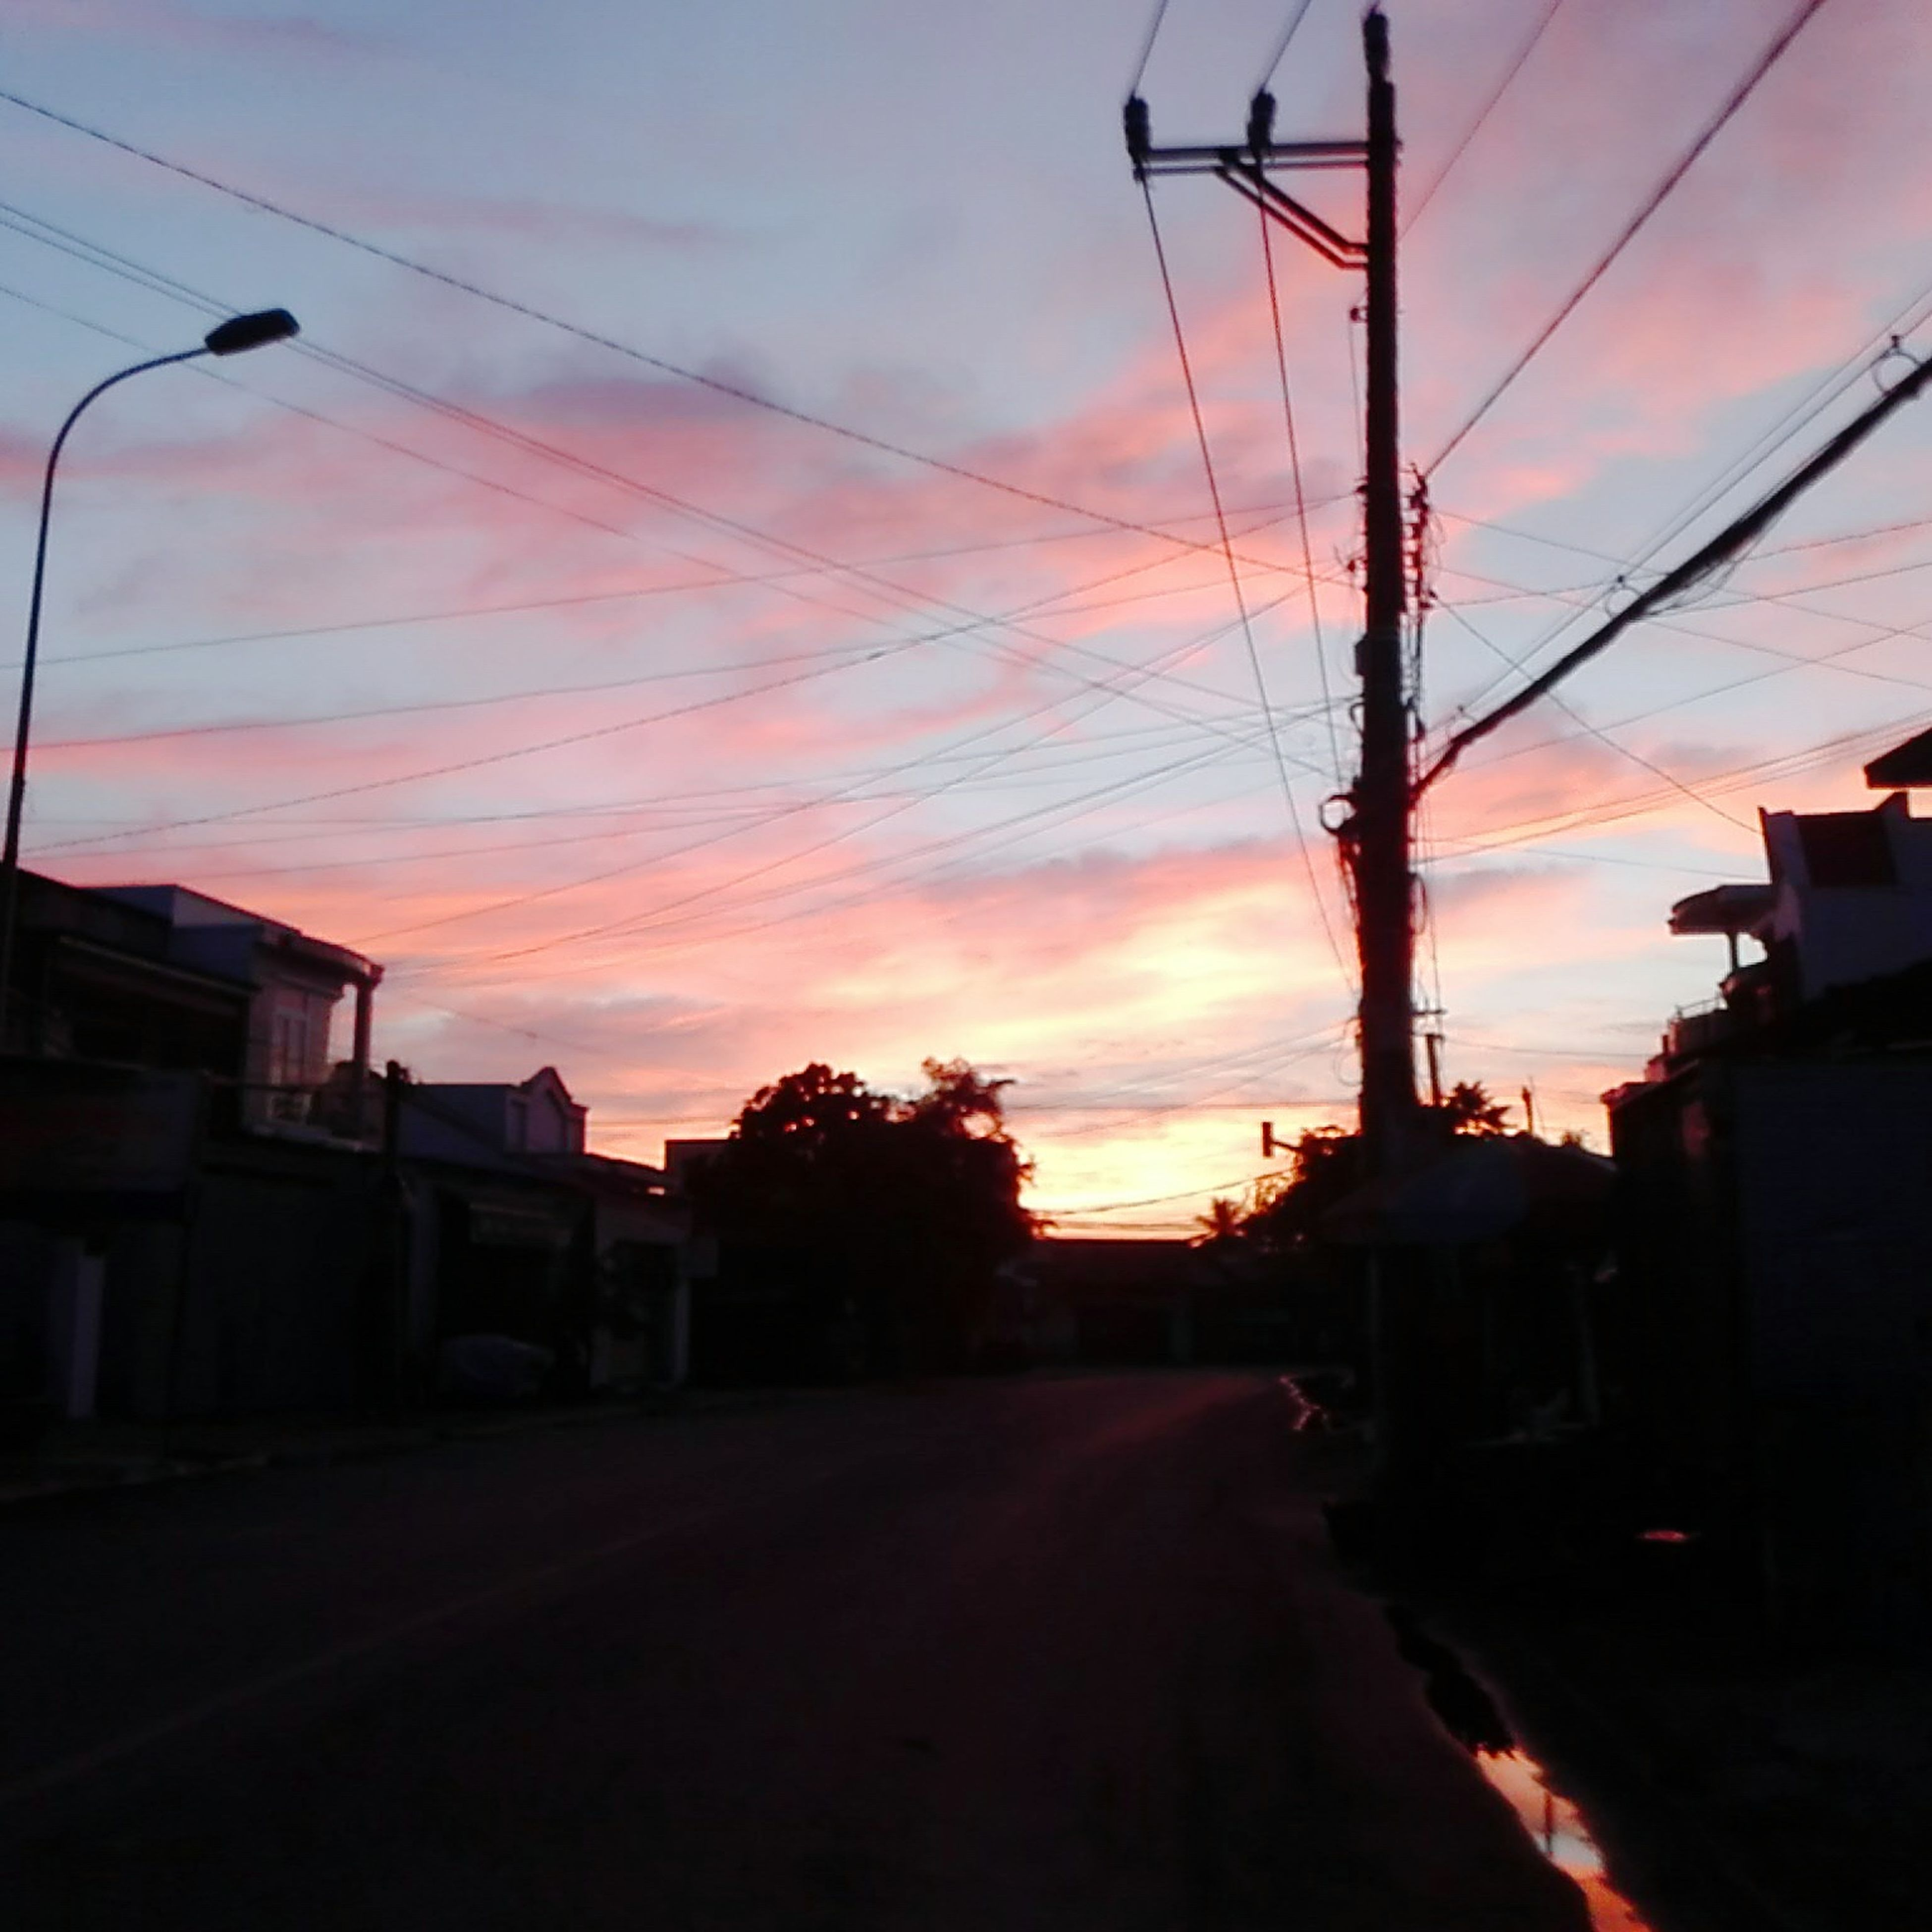 sunset, sky, silhouette, cable, built structure, road, architecture, cloud - sky, power line, electricity pylon, no people, building exterior, outdoors, transportation, nature, telephone line, day